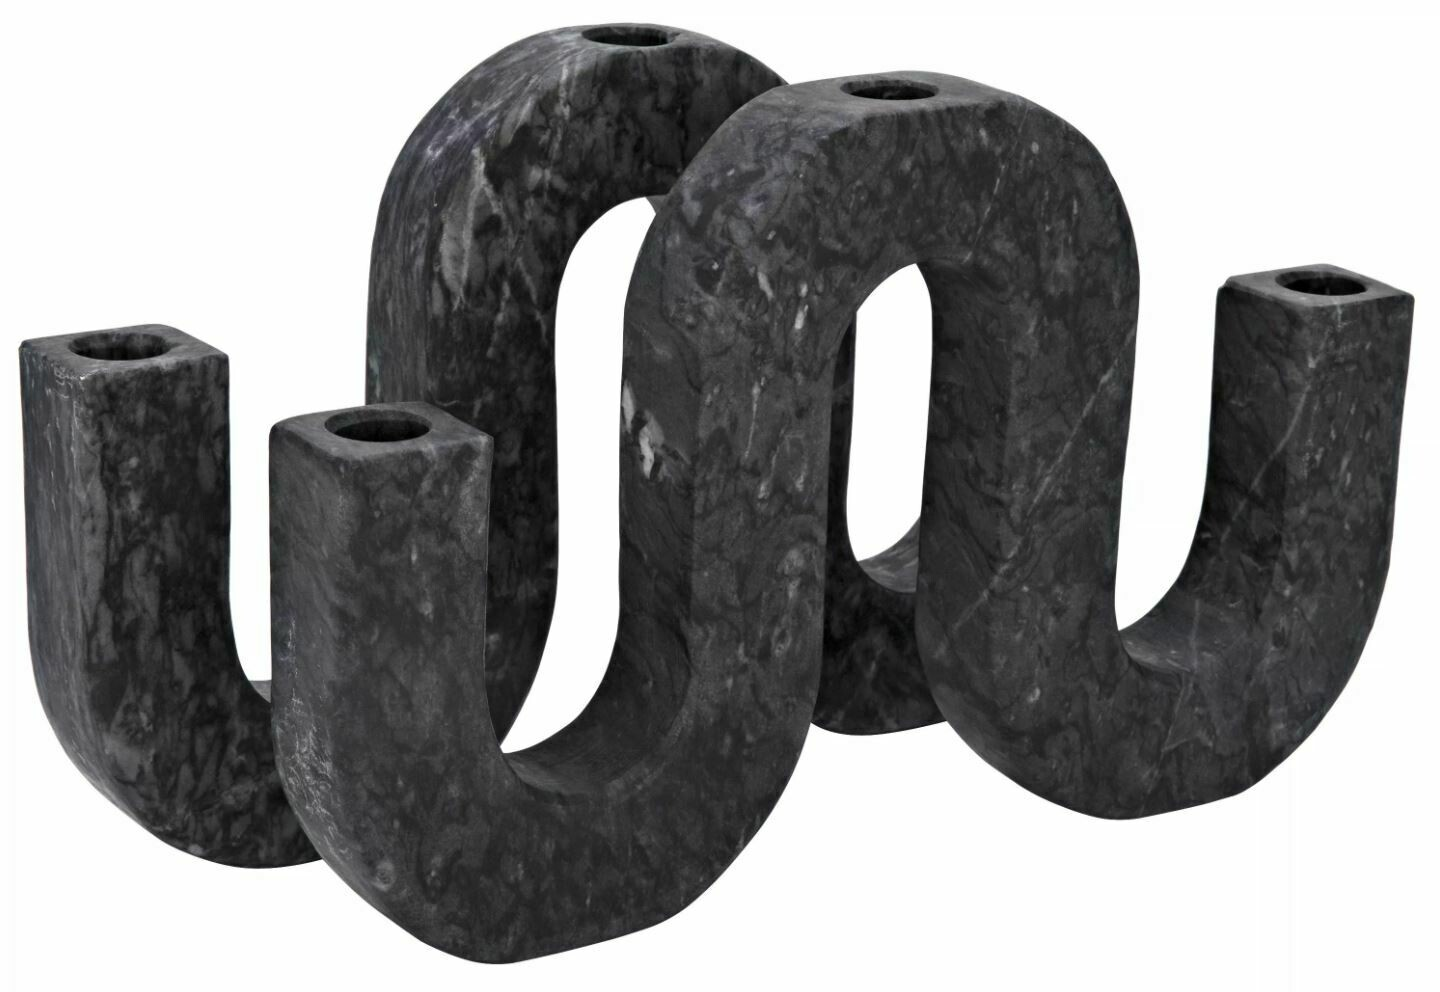 NR002 Mulholland Candle Holder - Black Marble